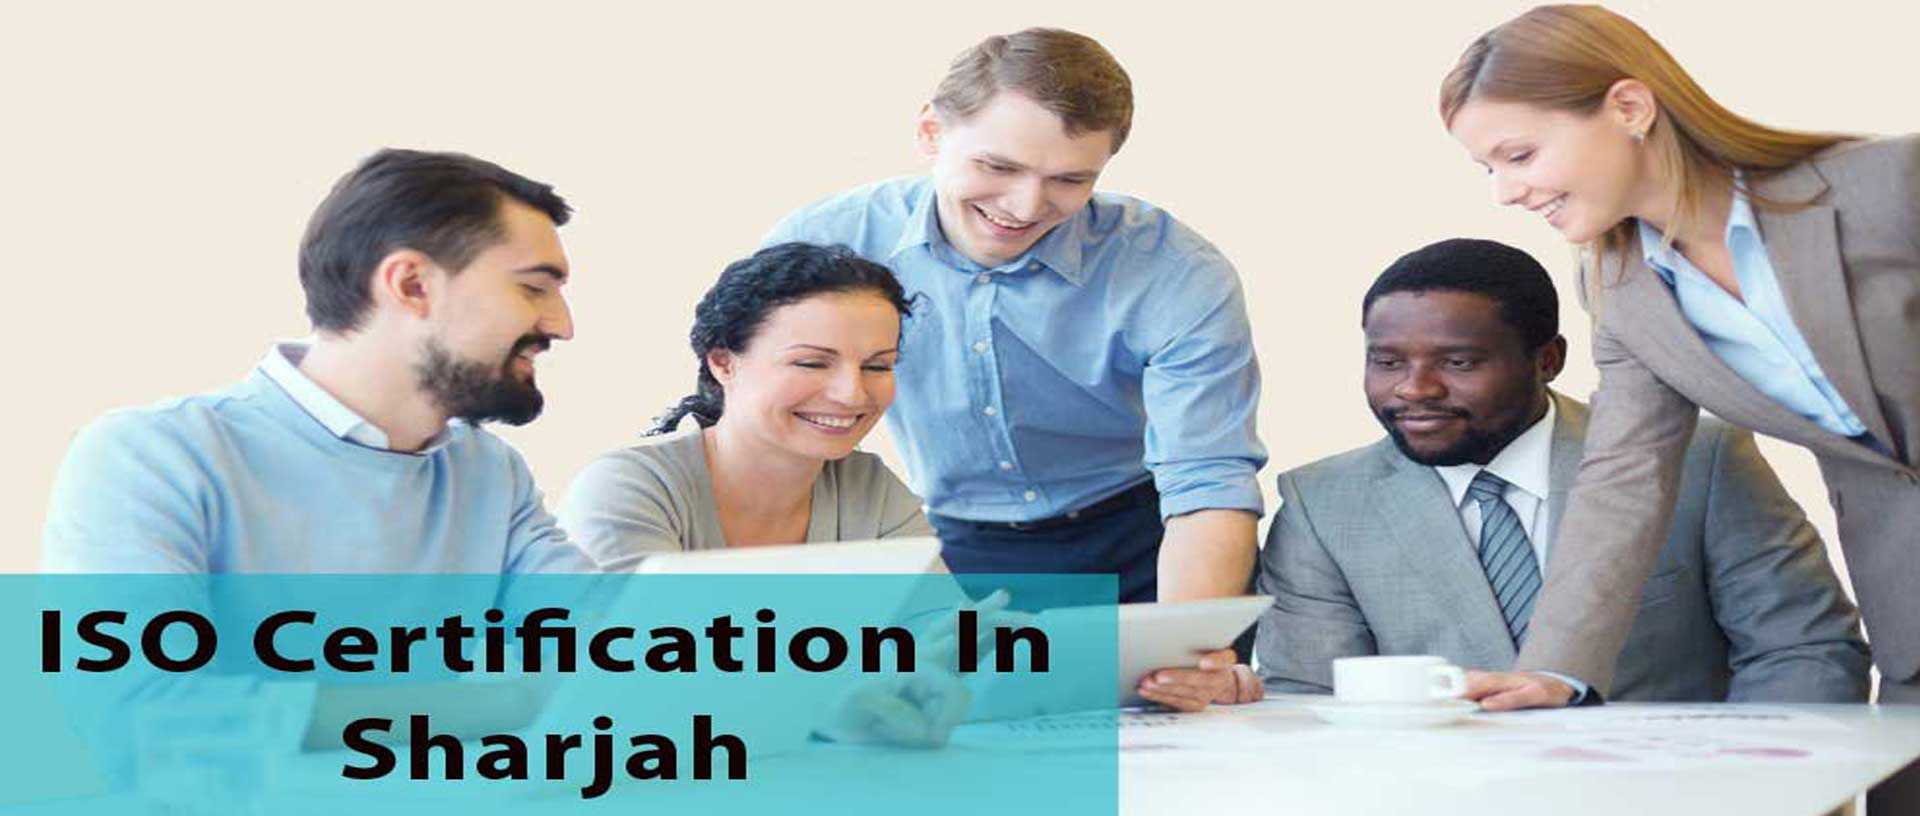 ISO_Certification_Sharjah